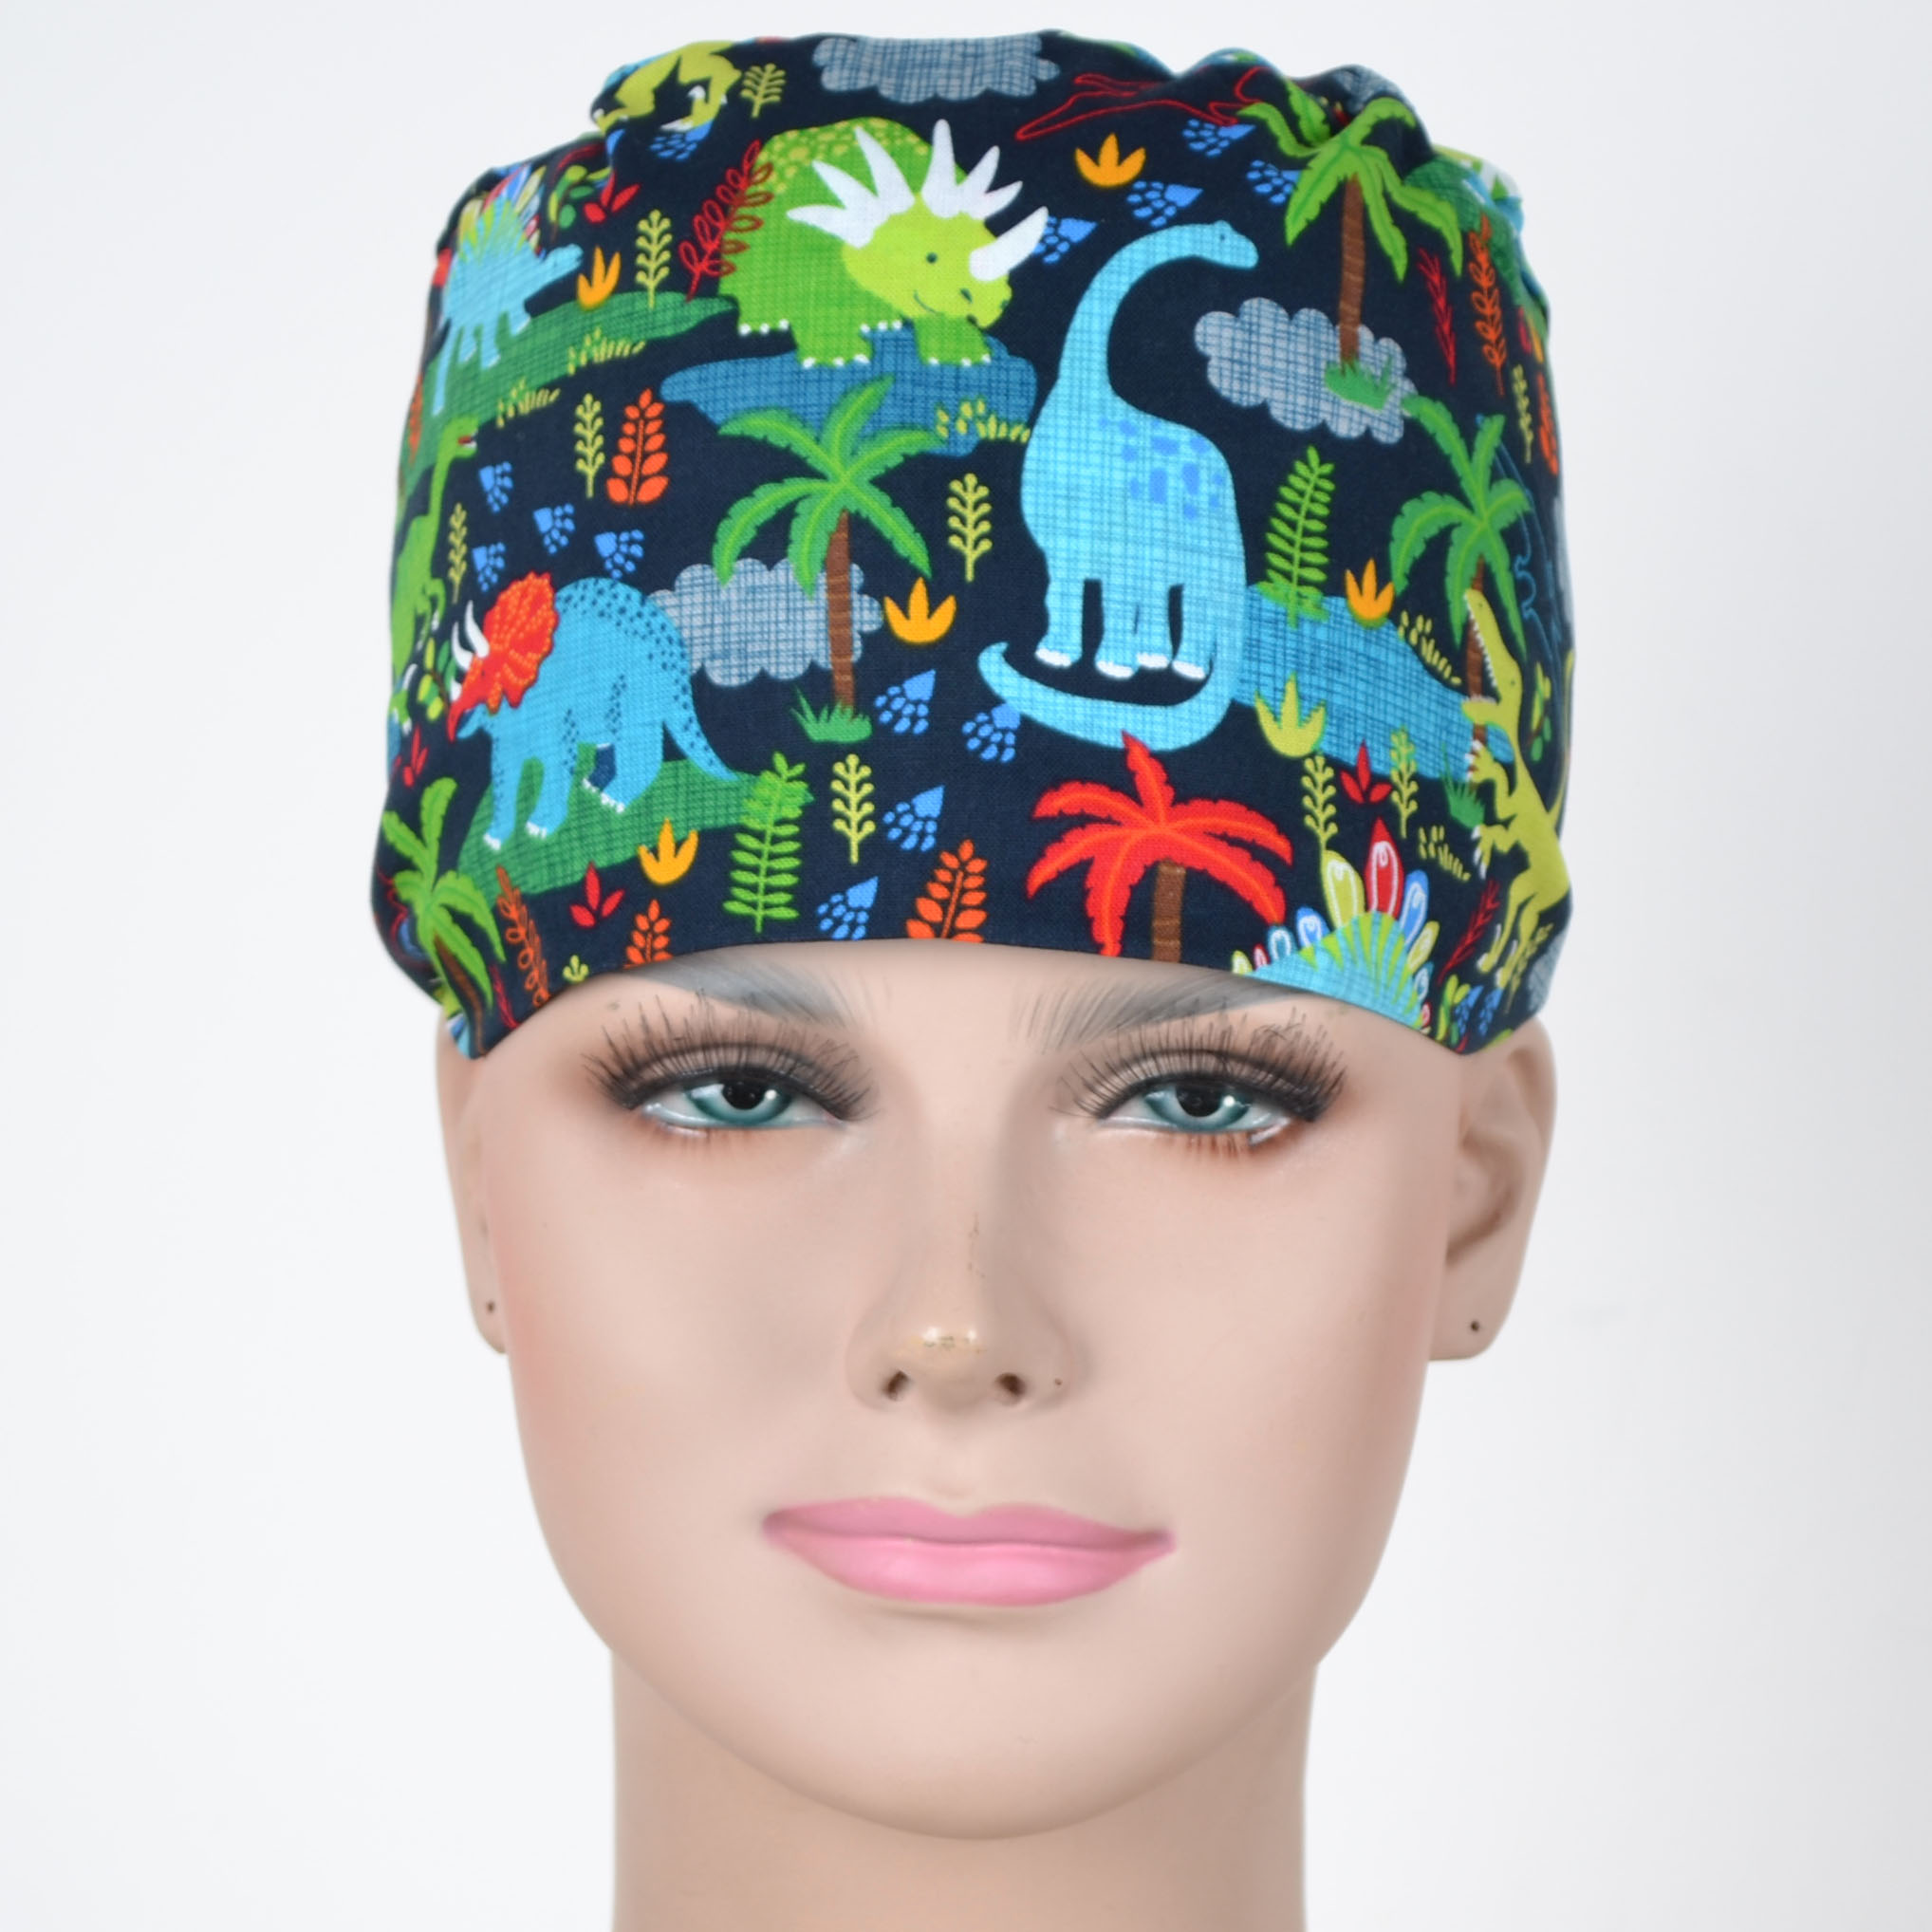 Unisex Medical  Caps 100% Cotton  In Dark Blue  With Dinosaur  Prints Surgical Caps With 3 Sizes ,masks Are Available